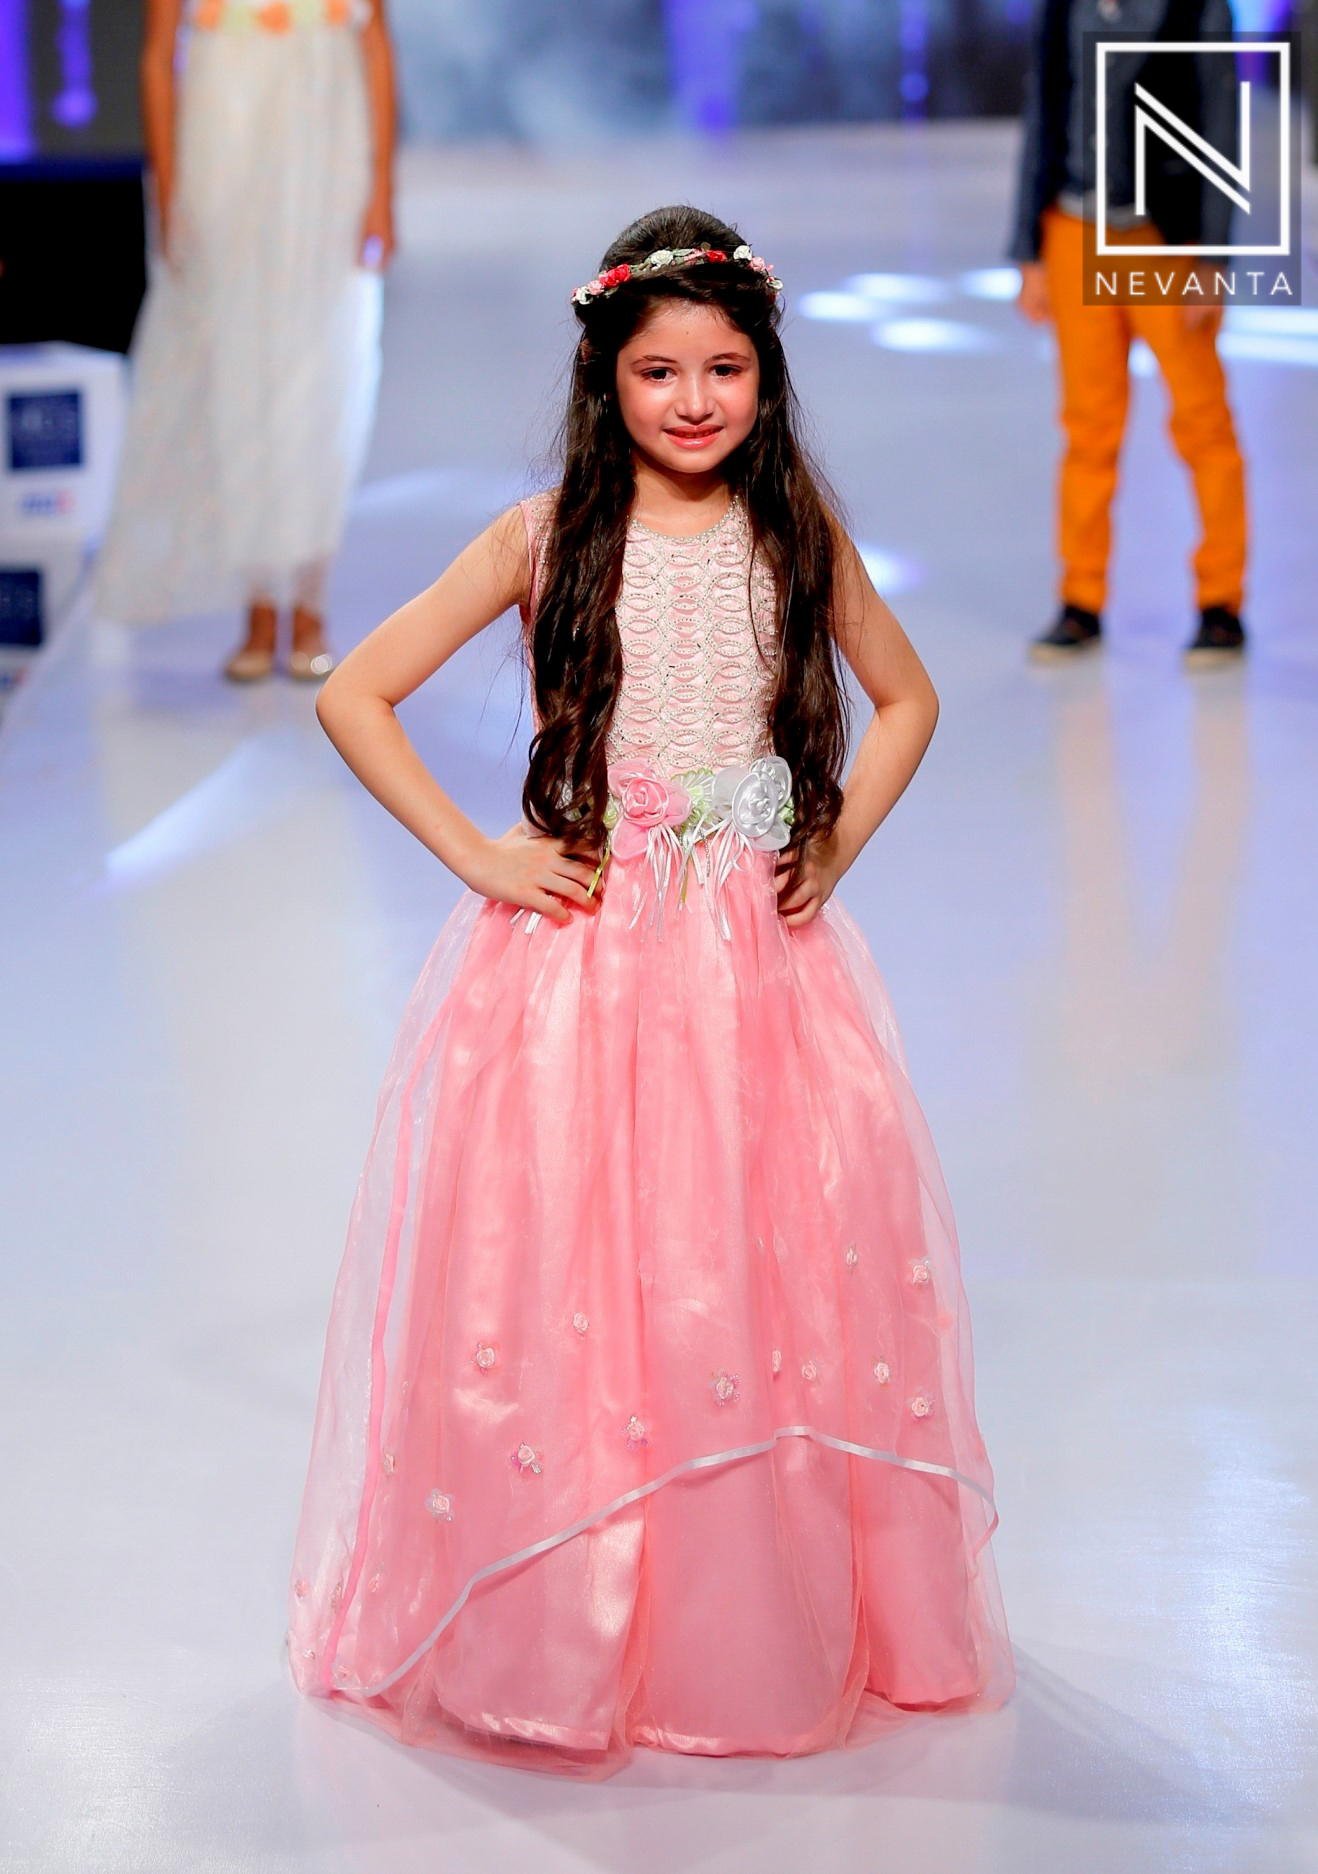 Harshaali malhotra walked the ramp in a pink gown at india kids fashion week 2016 nevanta Style me pink fashion show